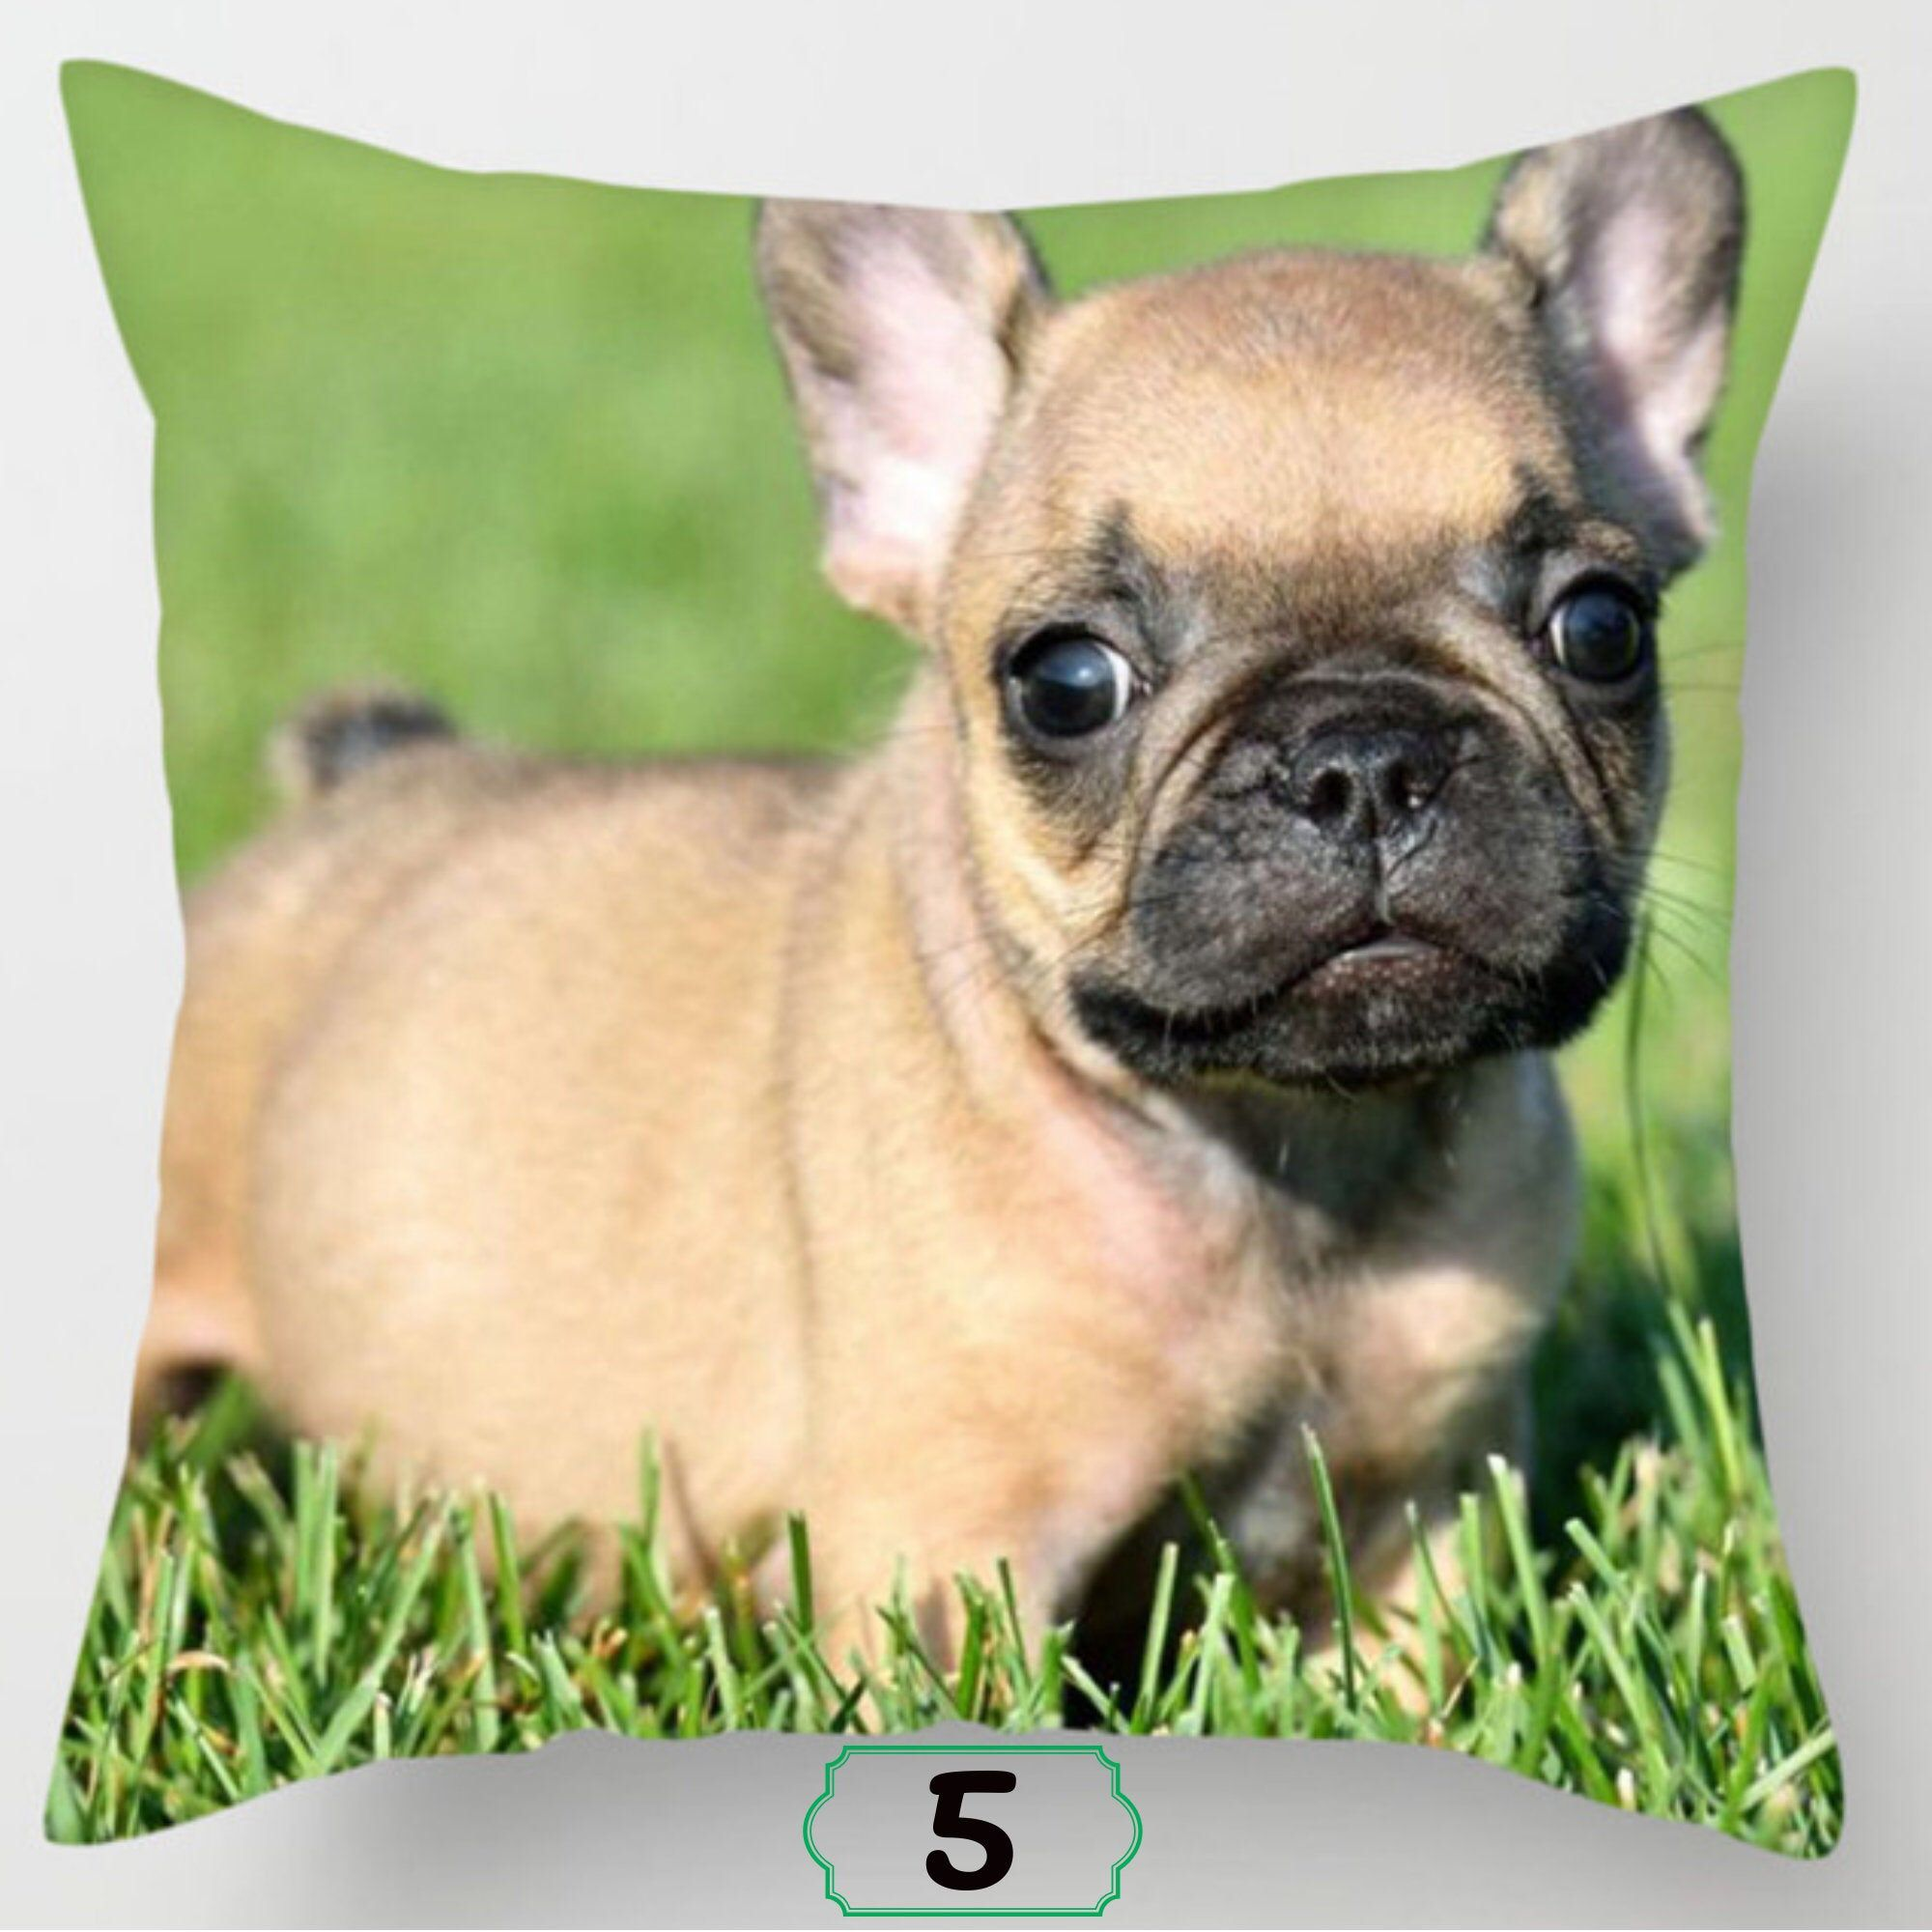 Boston Terrier Puppies For Sale Near Me Craigslist - Free ...